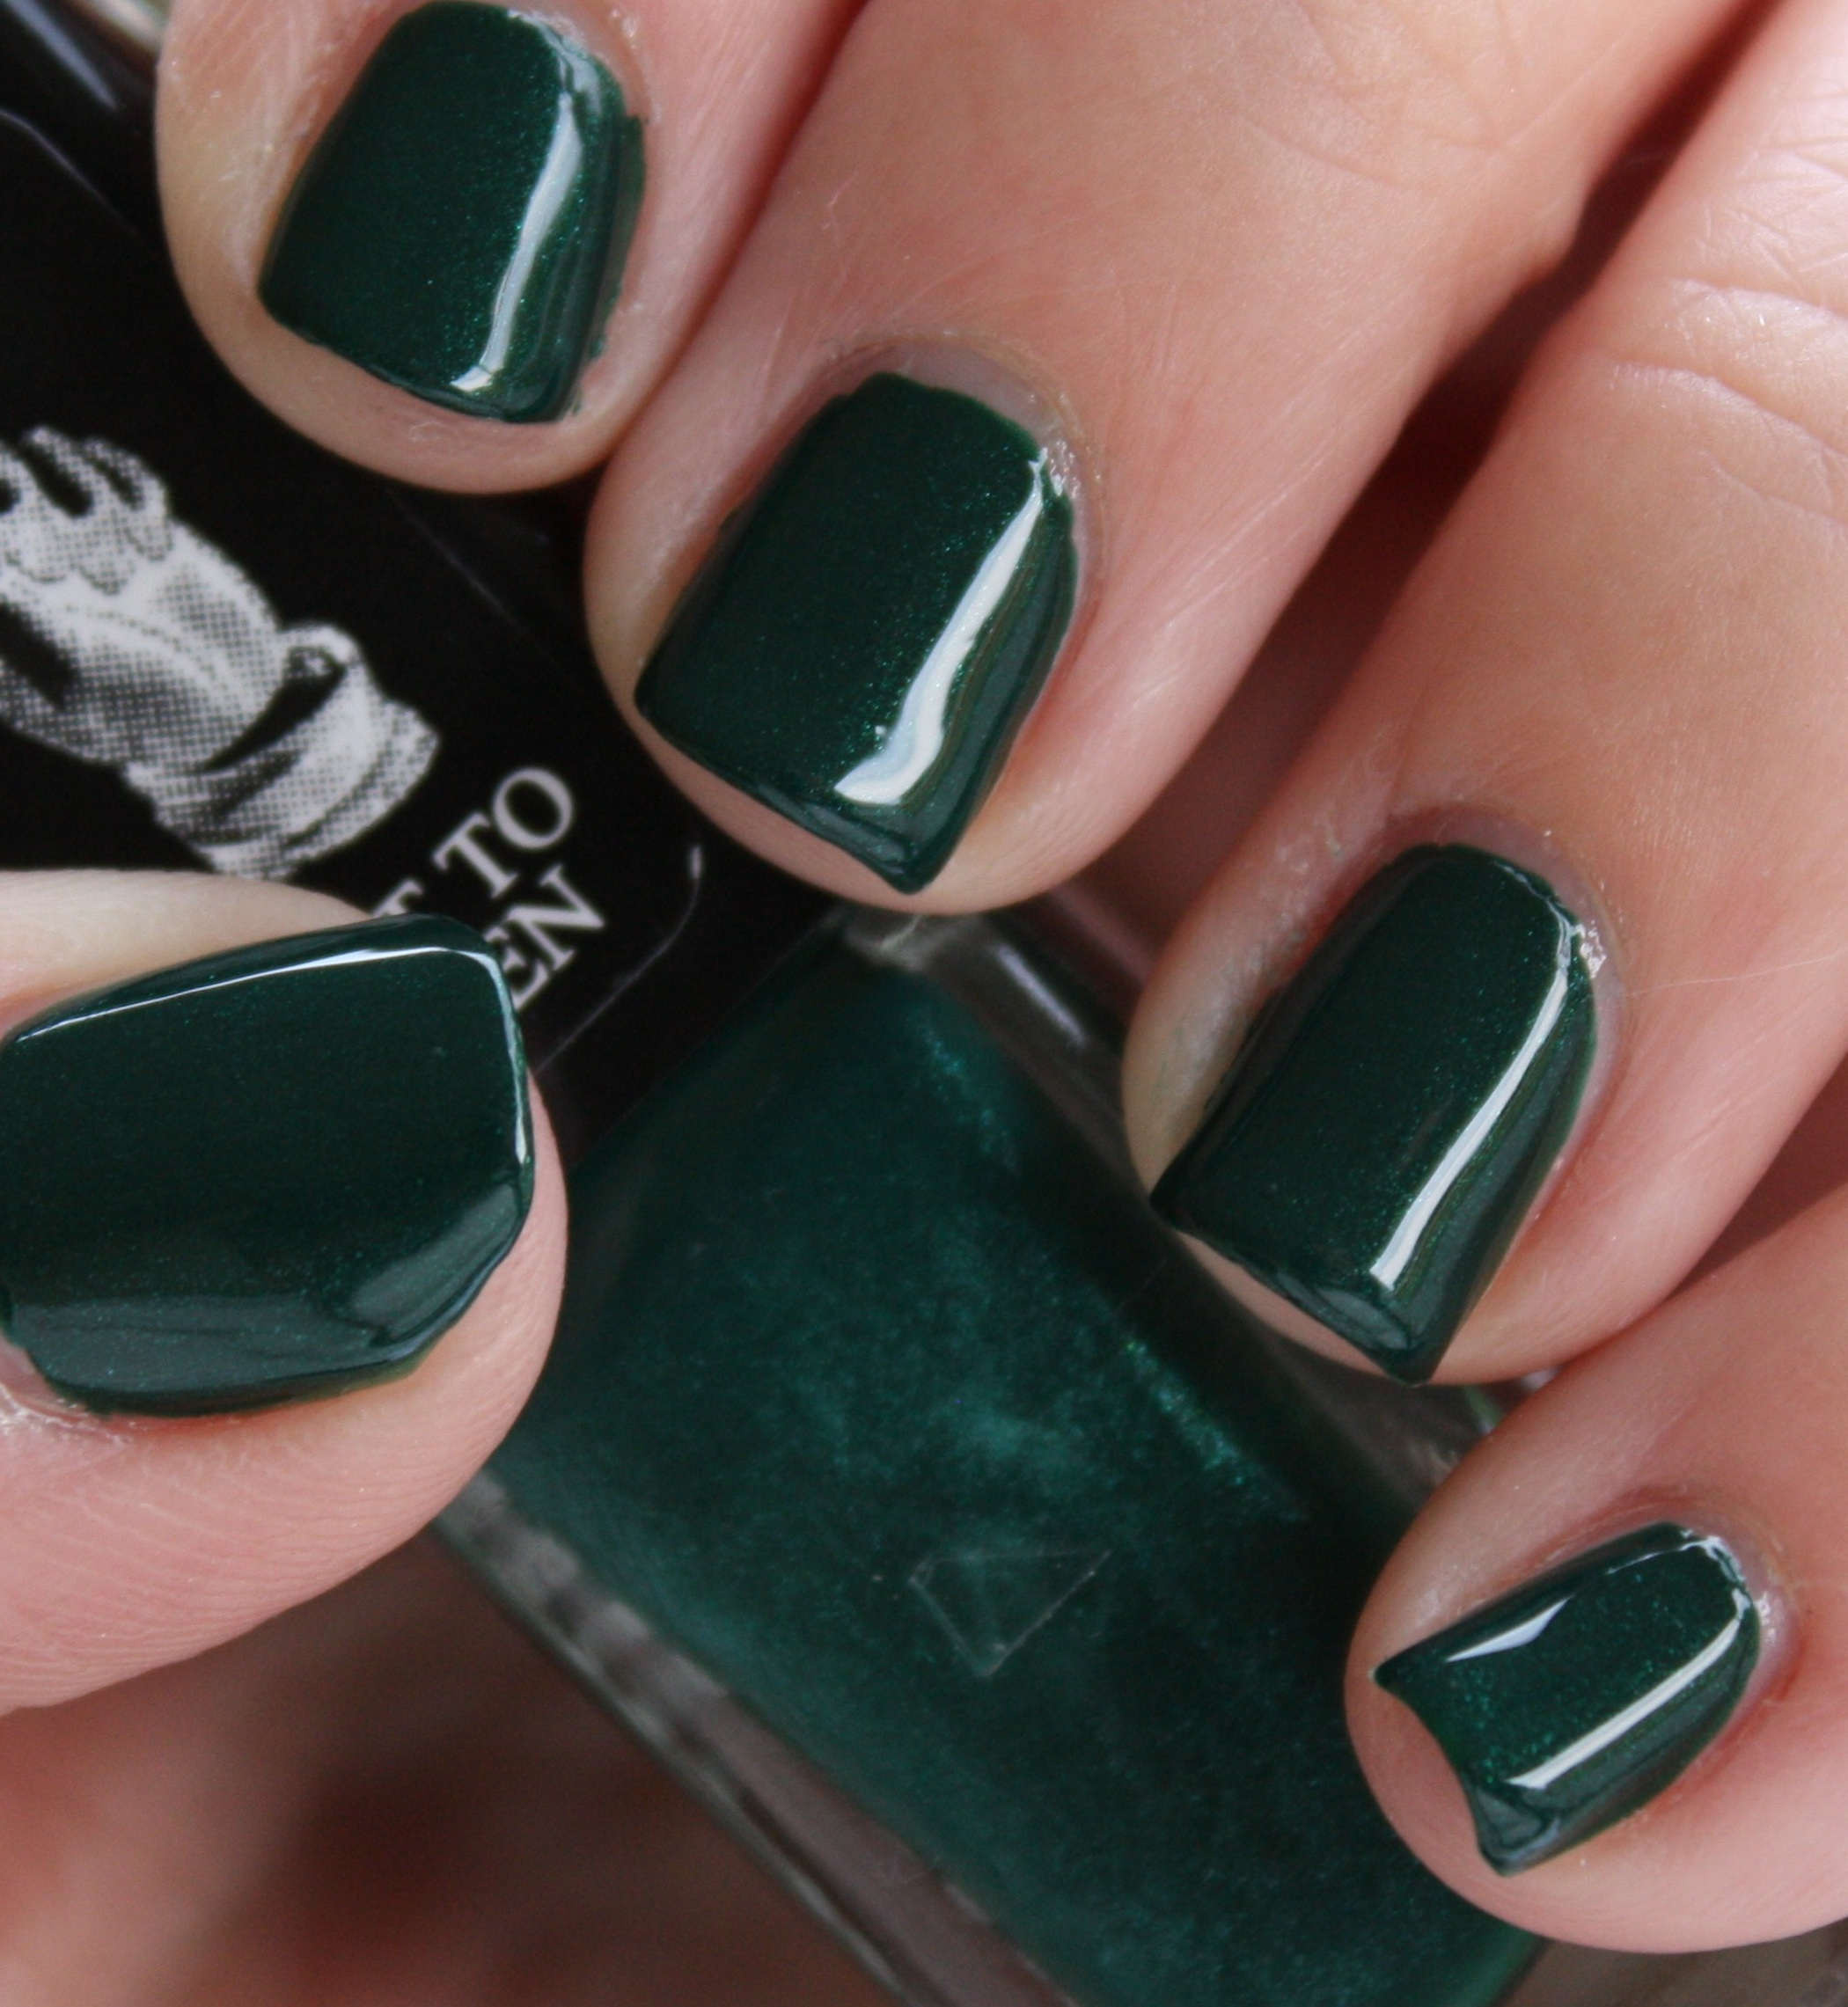 Butter London British Racing Green – horrendous color